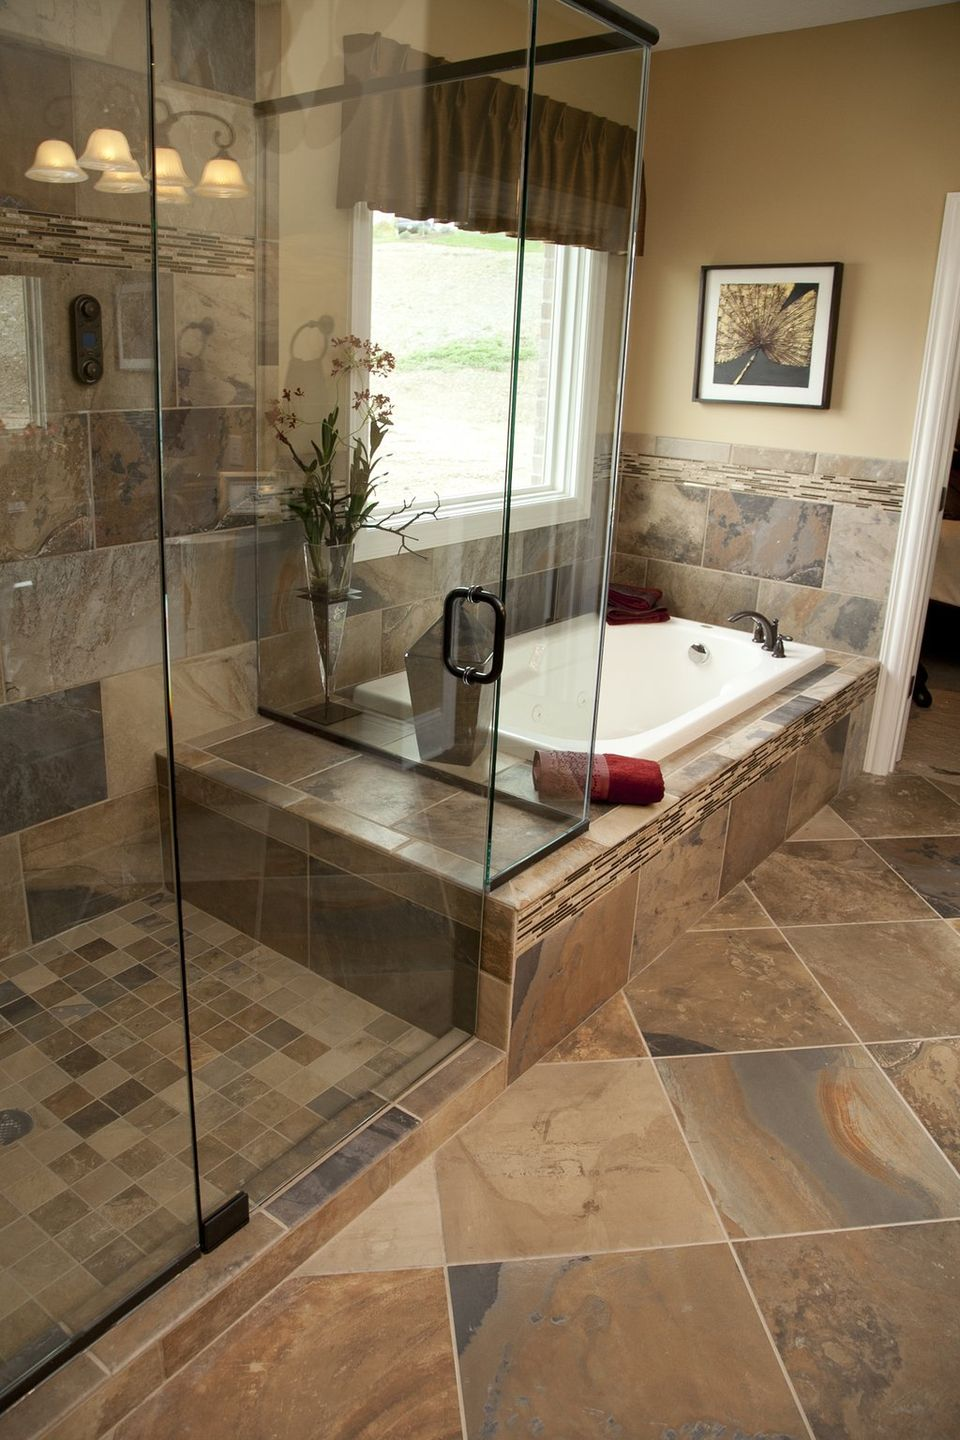 33 stunning pictures and ideas of natural stone bathroom for Bathroom floor tile ideas for small bathrooms